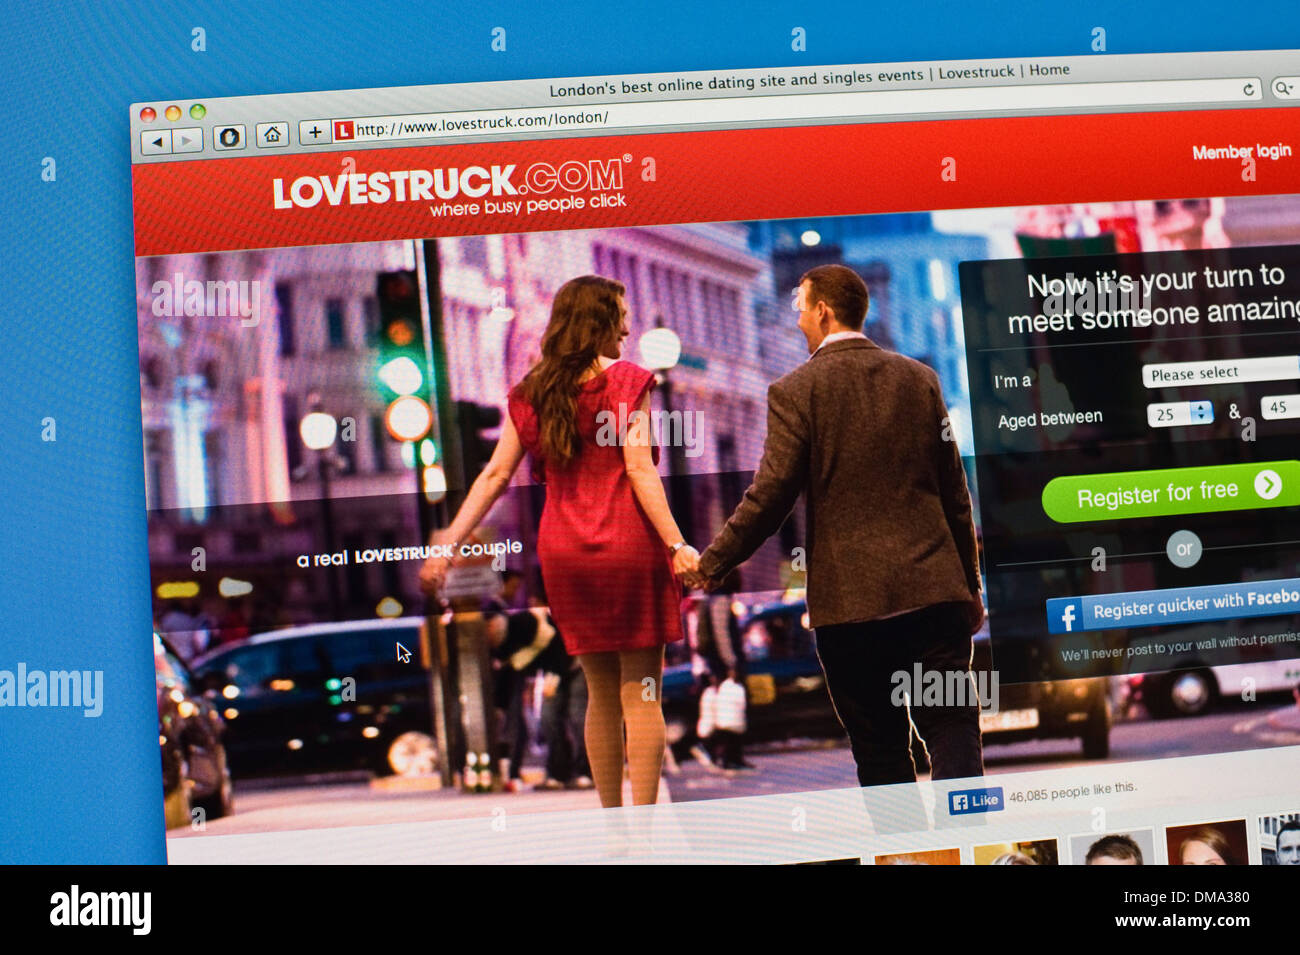 Pondicherry dating. Lovestruck dating hong kong.